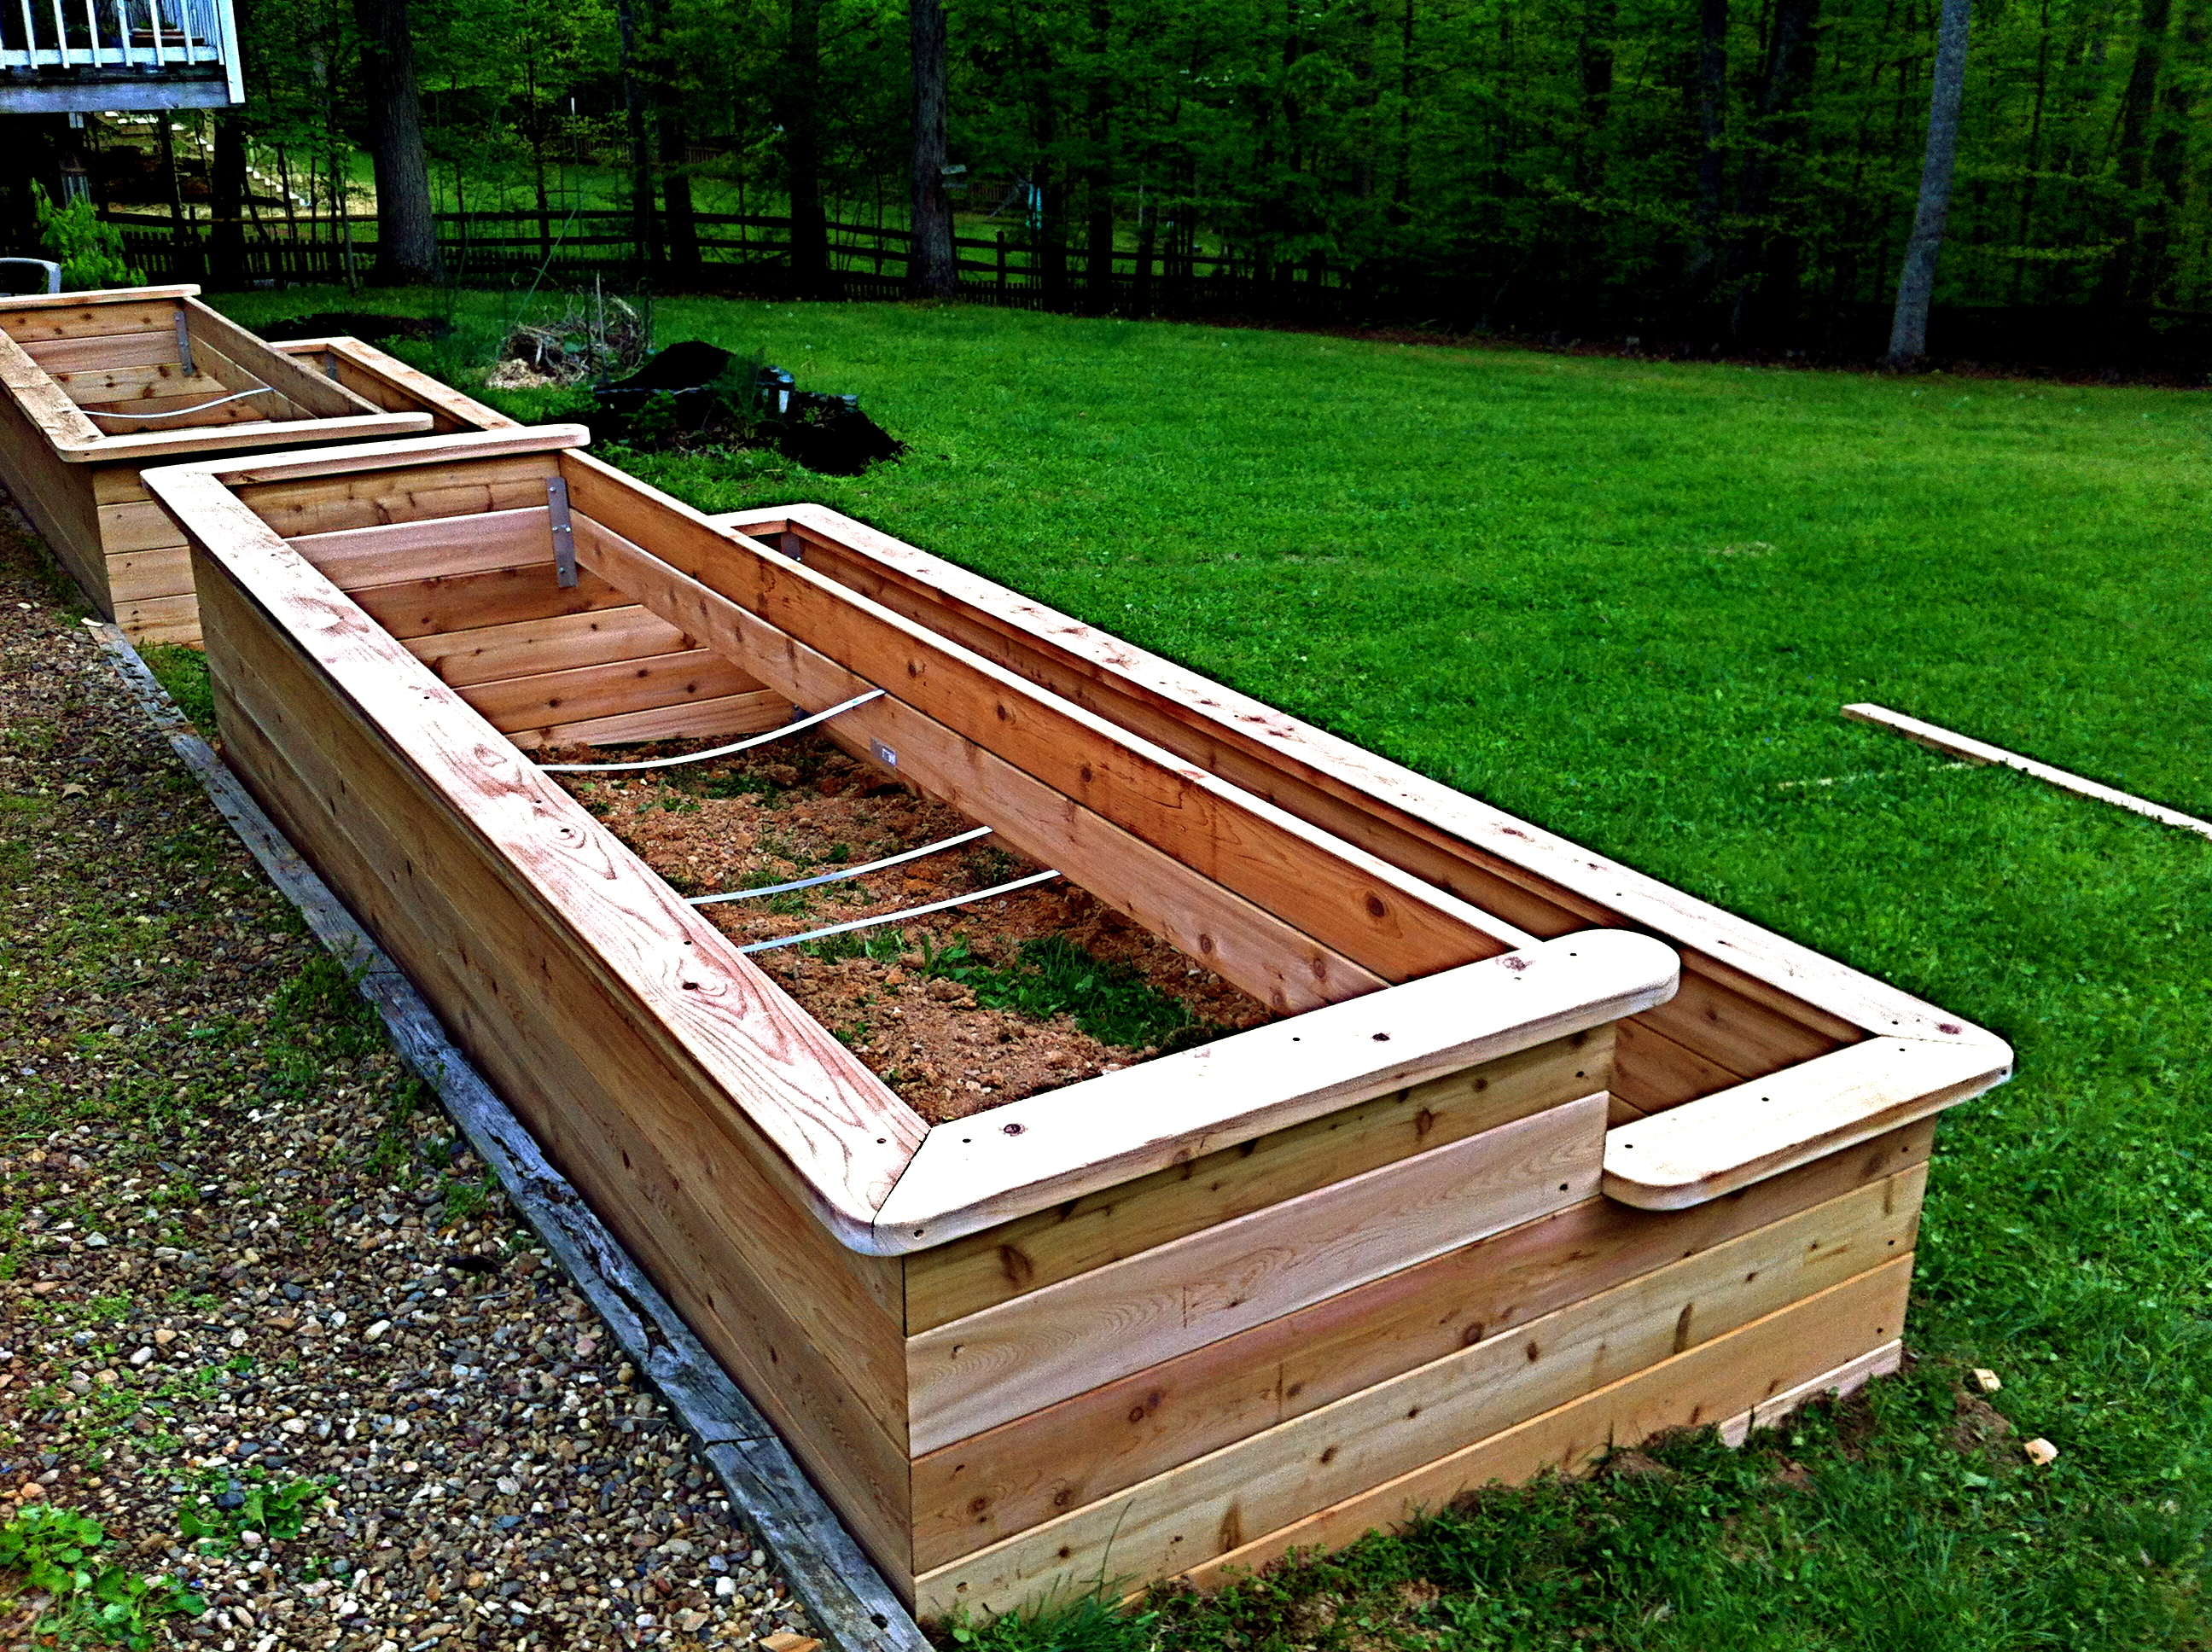 Custom Garden Beds by Sunnyside Projects | Sunnyside Projects